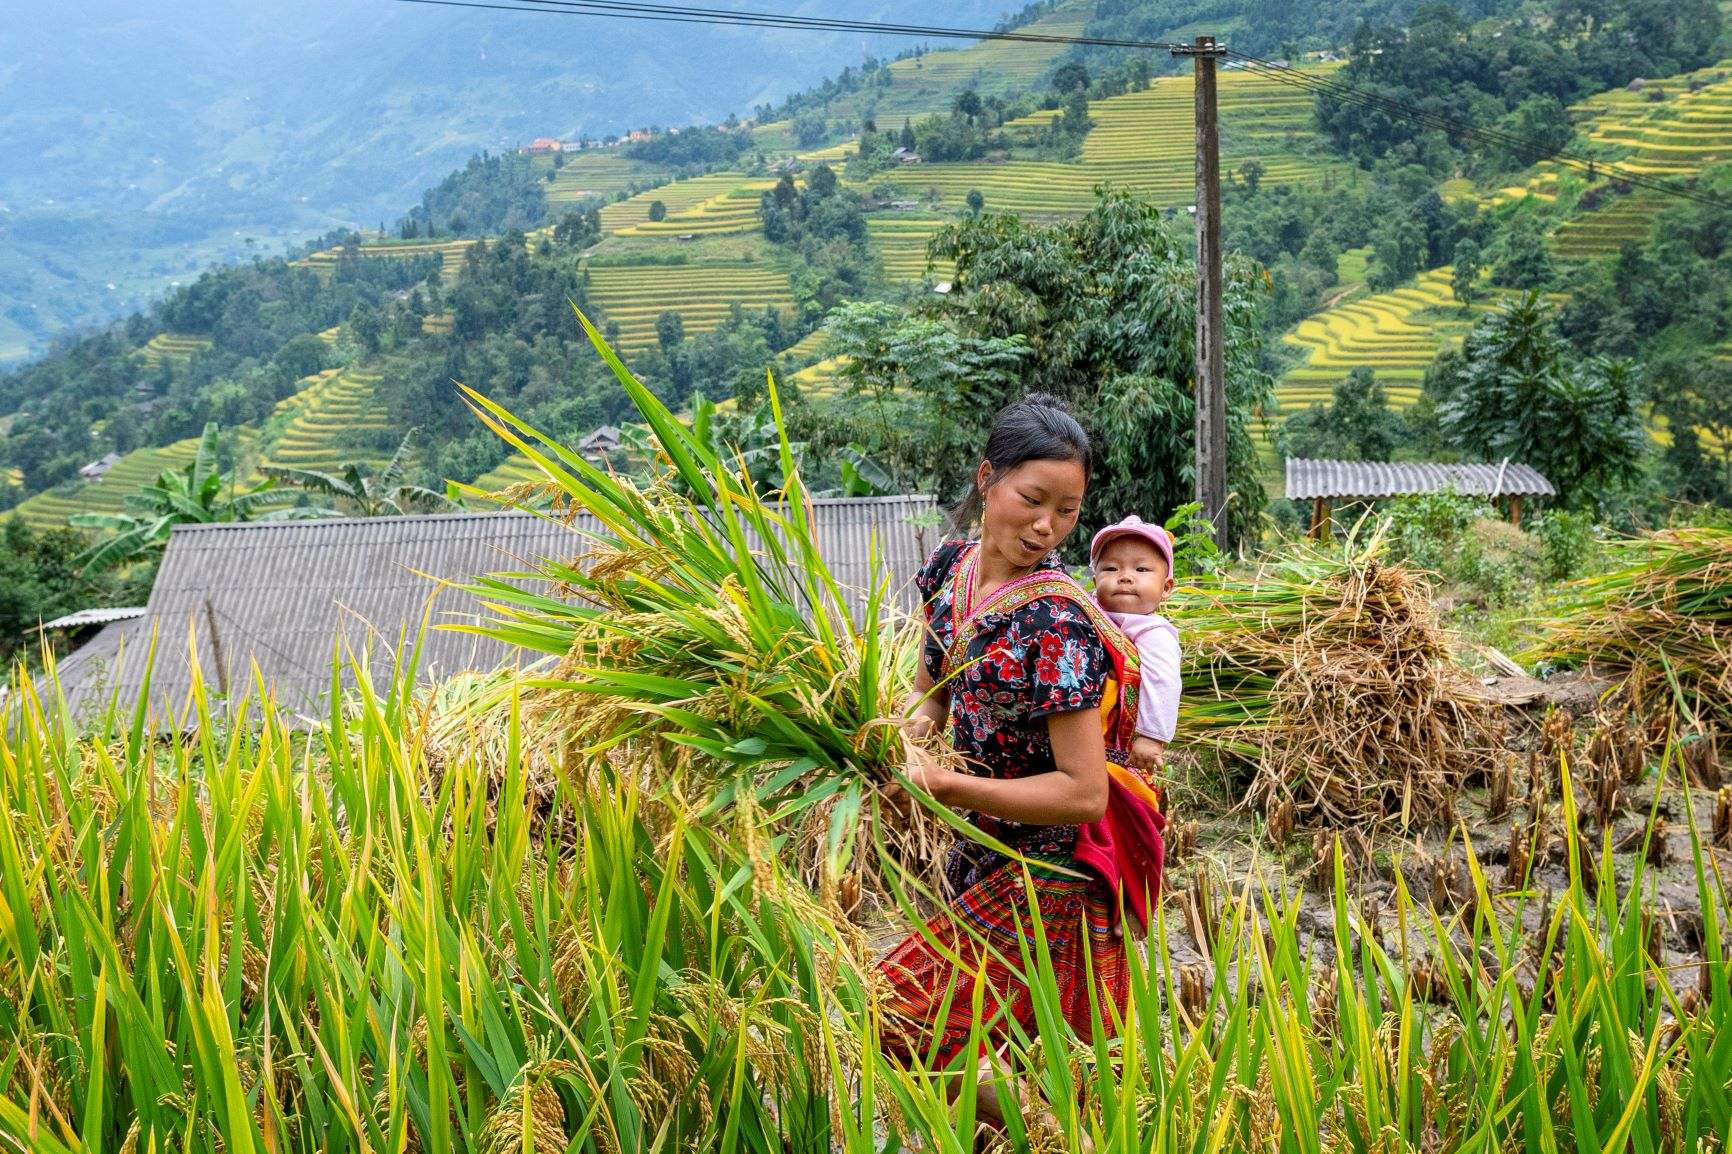 Landscapes, nature and local life during a field visit PLUP and VFMP to Yai Village, Phoukoud District, Xiengkhouang Province. © Bart Verweij – MRLG